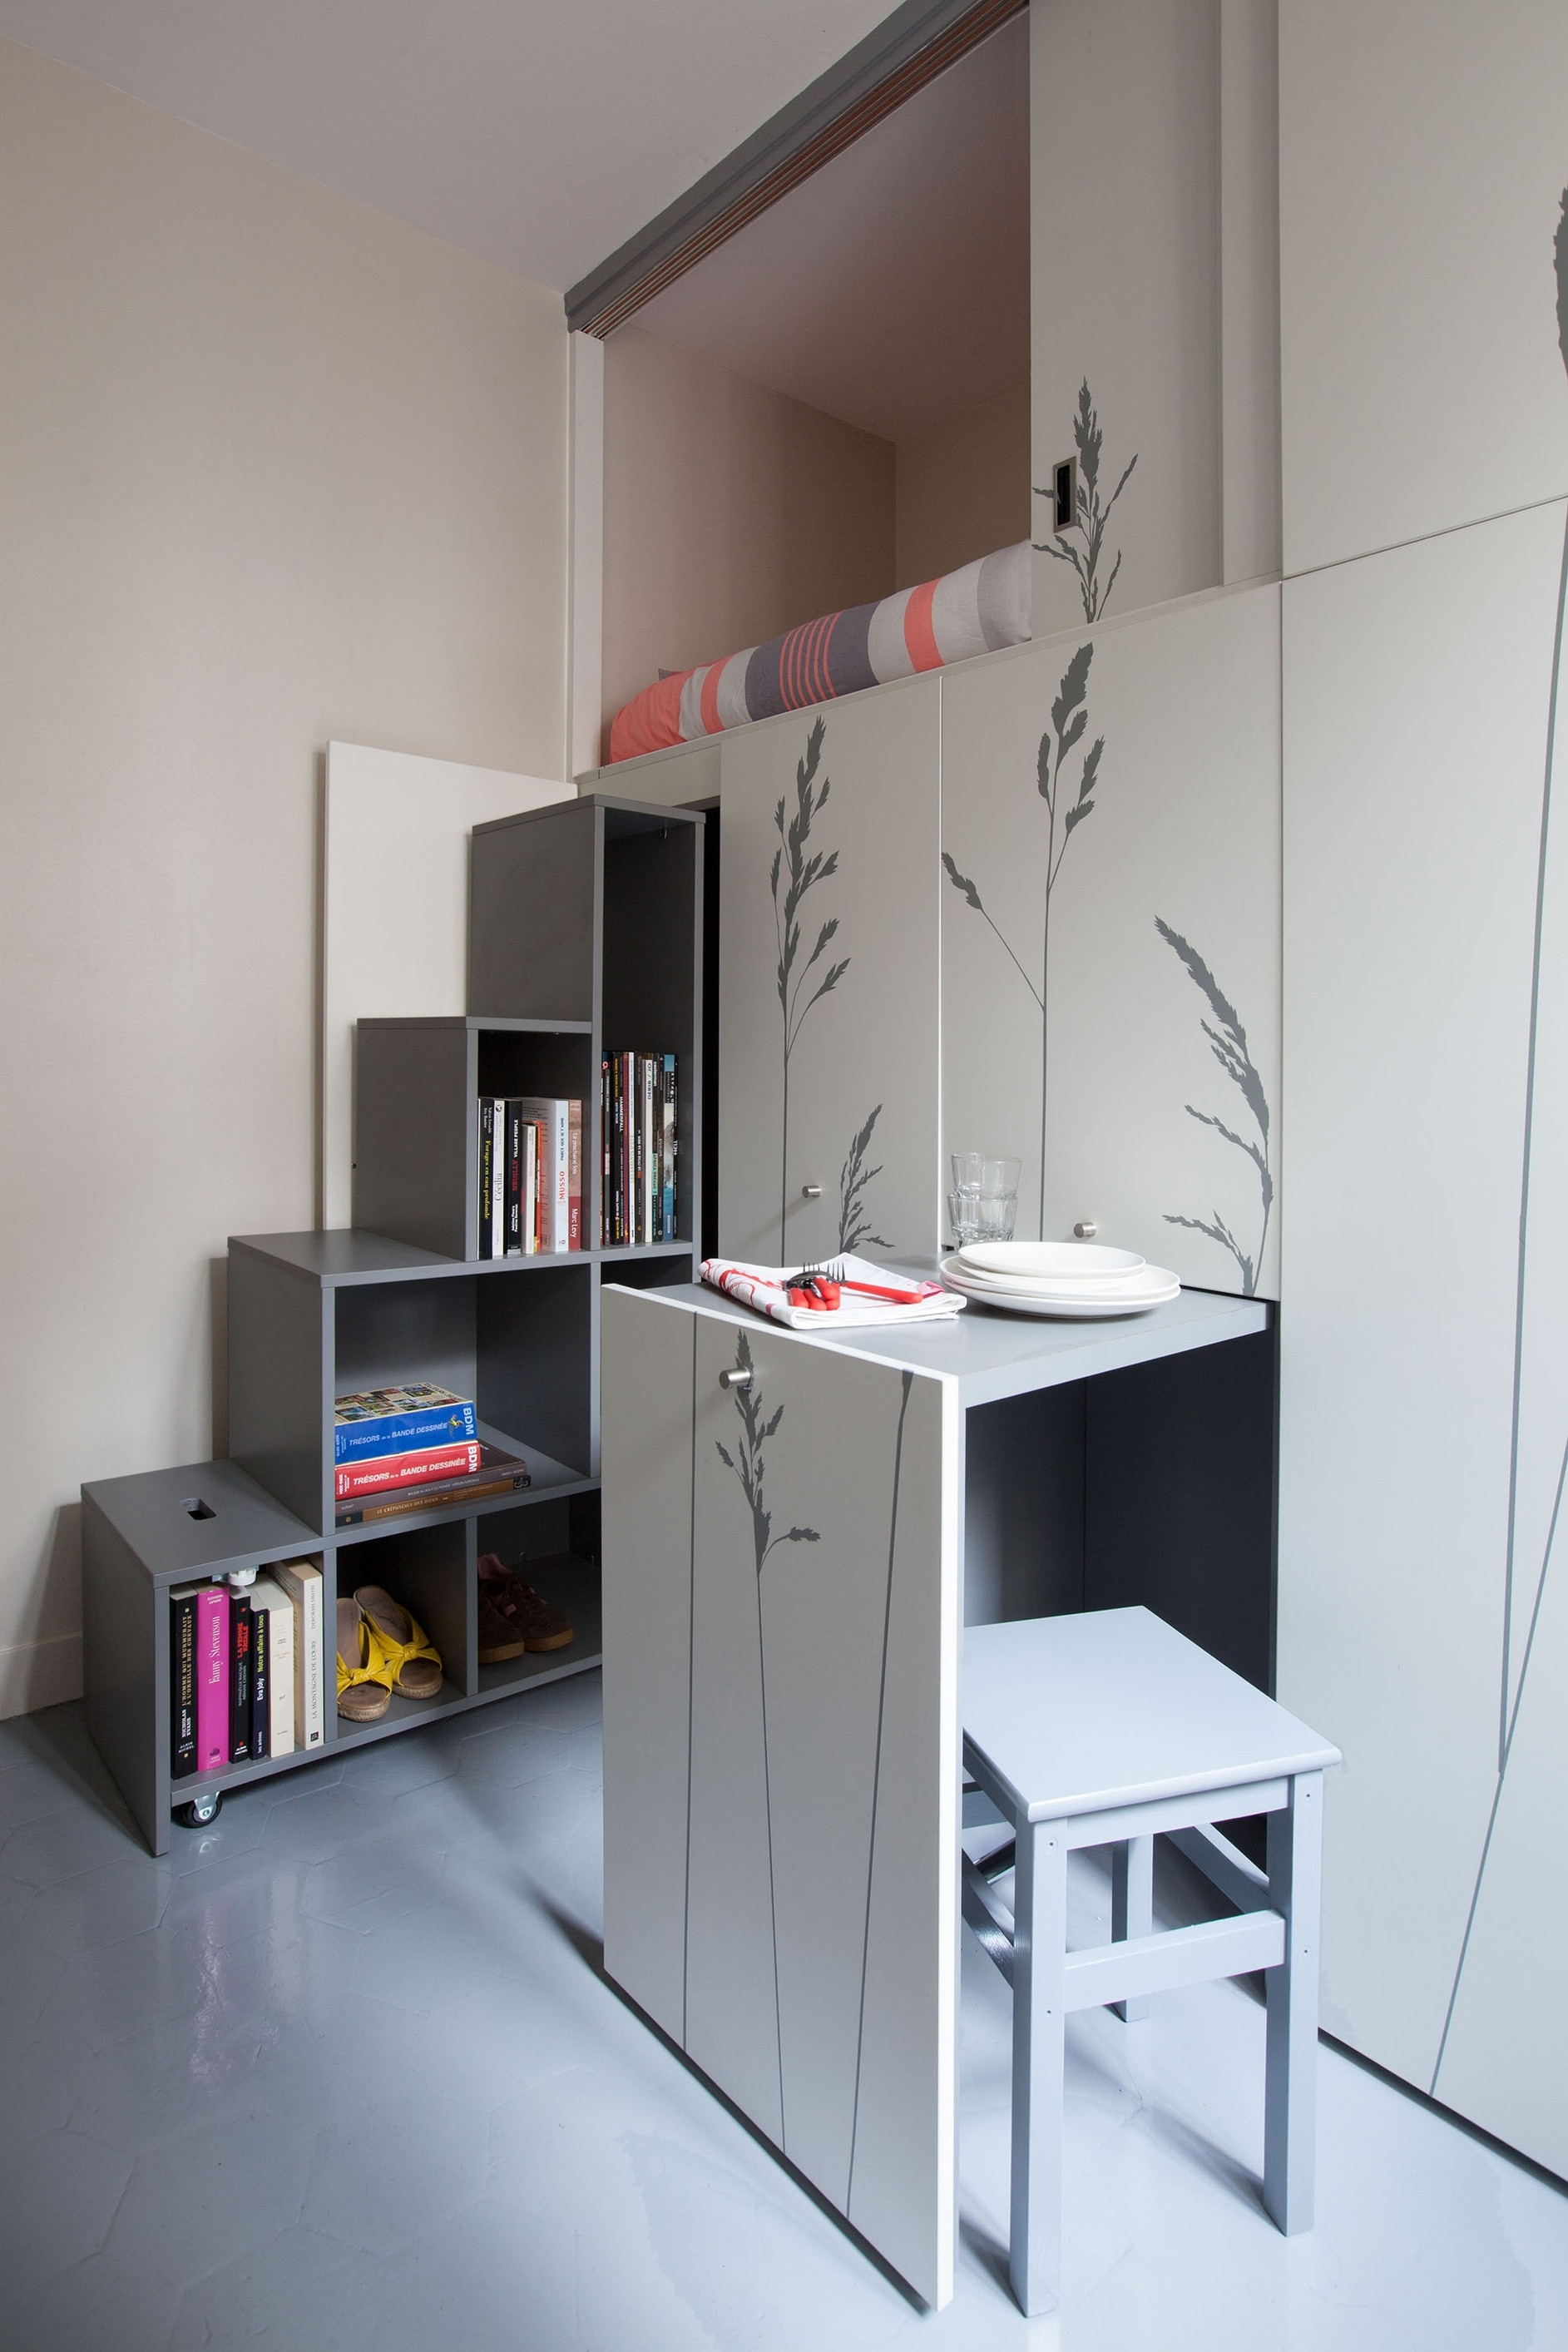 Tiny apartment in paris by kitoko studio karmatrendz for 100 sq ft room design